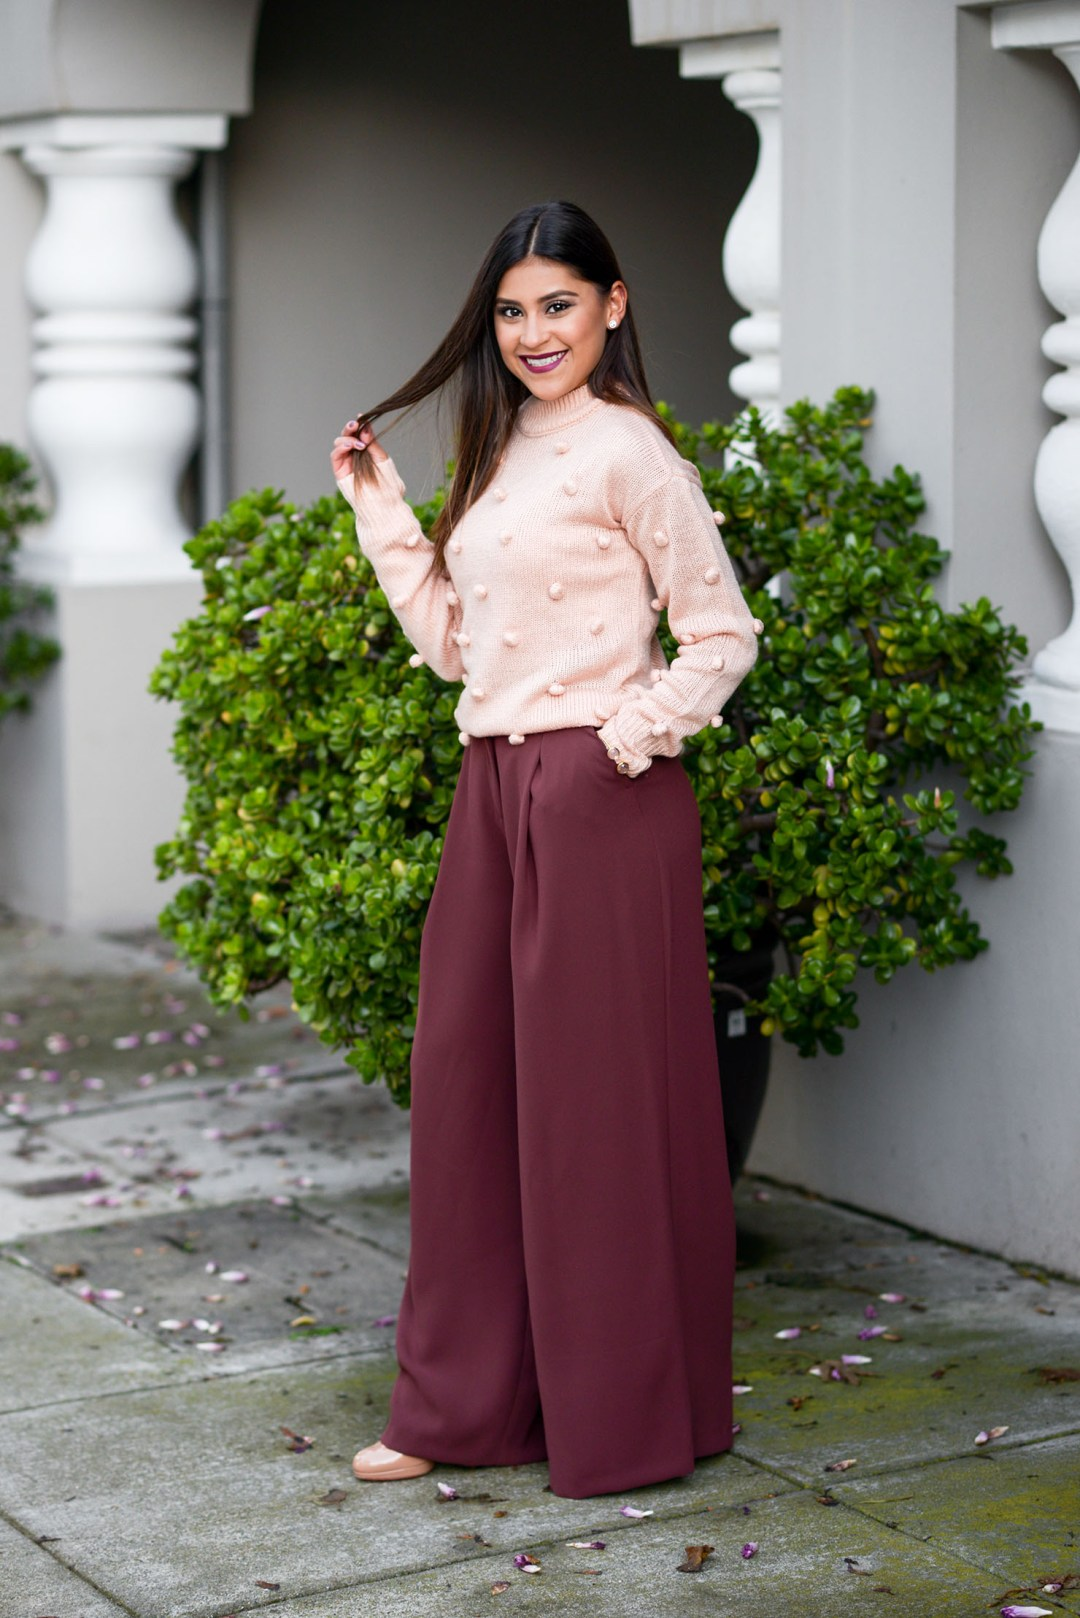 Lifestyle blogger Kelsey Kaplan of Kelsey Kaplan Fashion wearing River Island pants and pom pom sweater for Thanksgiving outfit